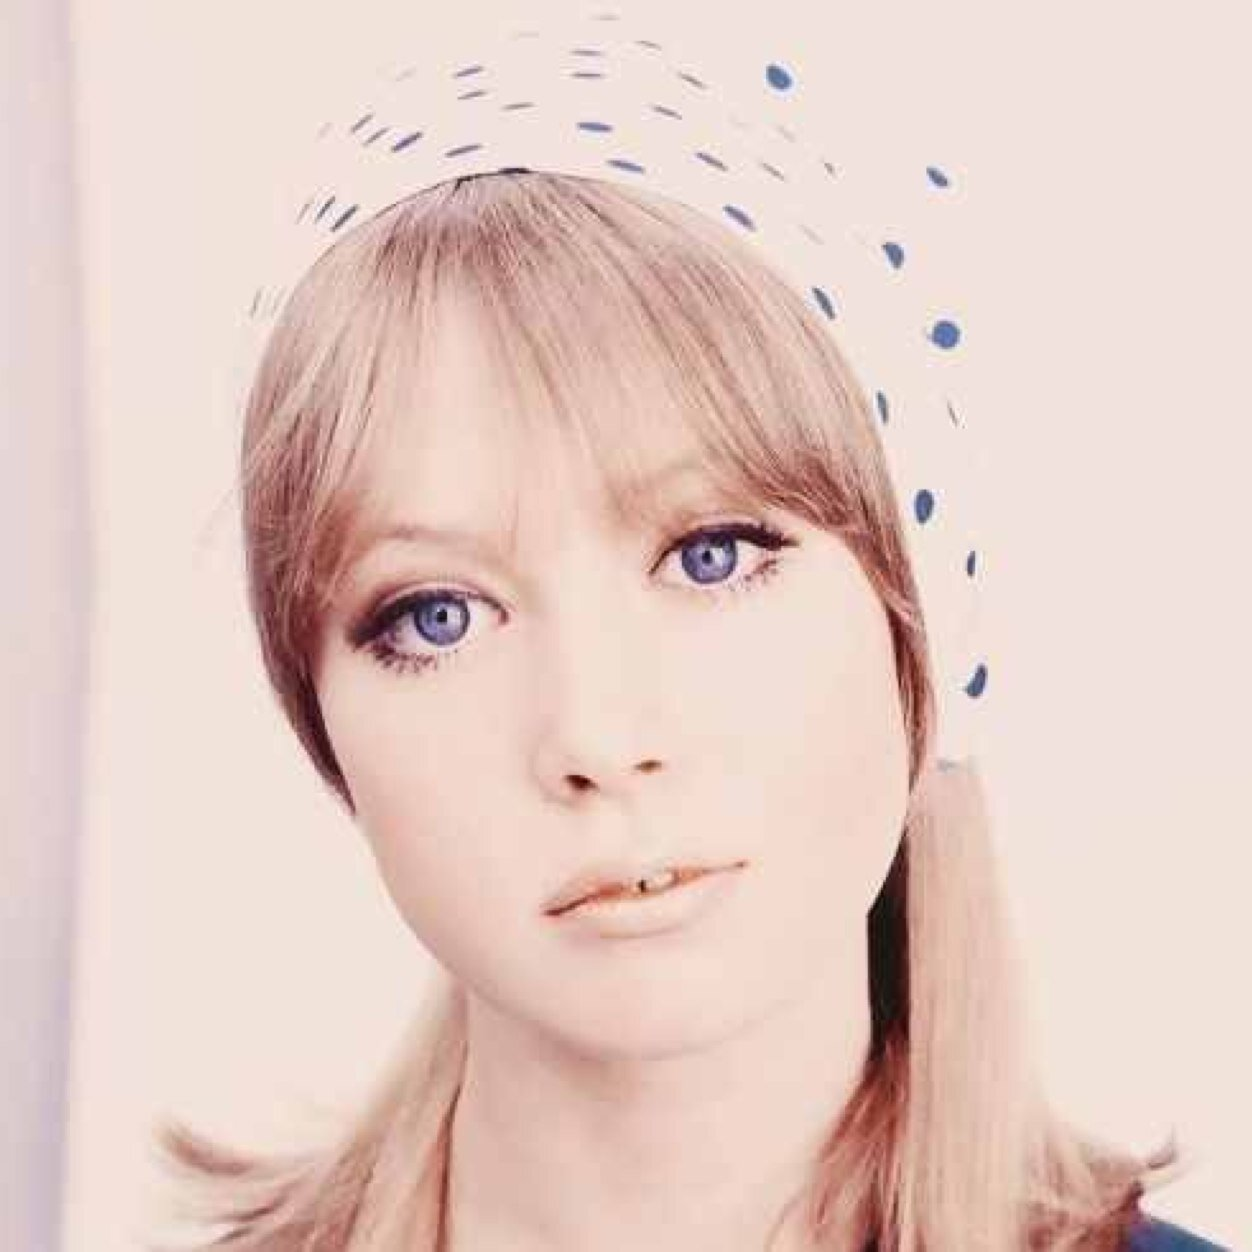 pattie boyd picturespattie boyd eric clapton, pattie boyd pictures, pattie boyd now, pattie boyd jimmy page, pattie boyd makeup, pattie boyd child, pattie boyd height, pattie boyd 2016, pattie boyd height weight, pattie boyd book review, pattie boyd, pattie boyd 2015, pattie boyd photos, pattie boyd images, pattie boyd 2014, pattie boyd george harrison, pattie boyd layla, pattie boyd songs, pattie boyd harrison, pattie boyd wiki